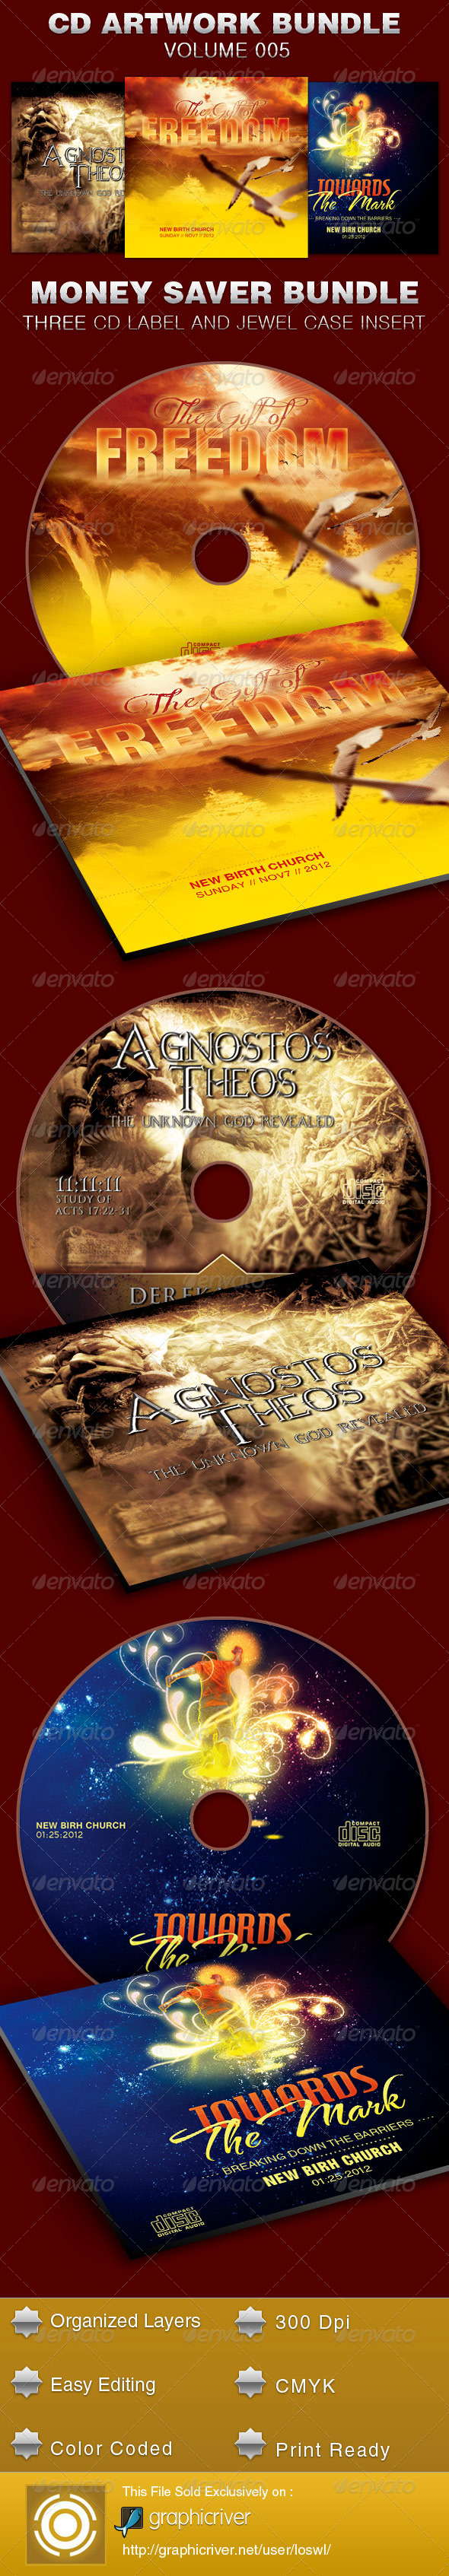 CD Cover Artwork Bundle-Vol 005 - CD & DVD Artwork Print Templates